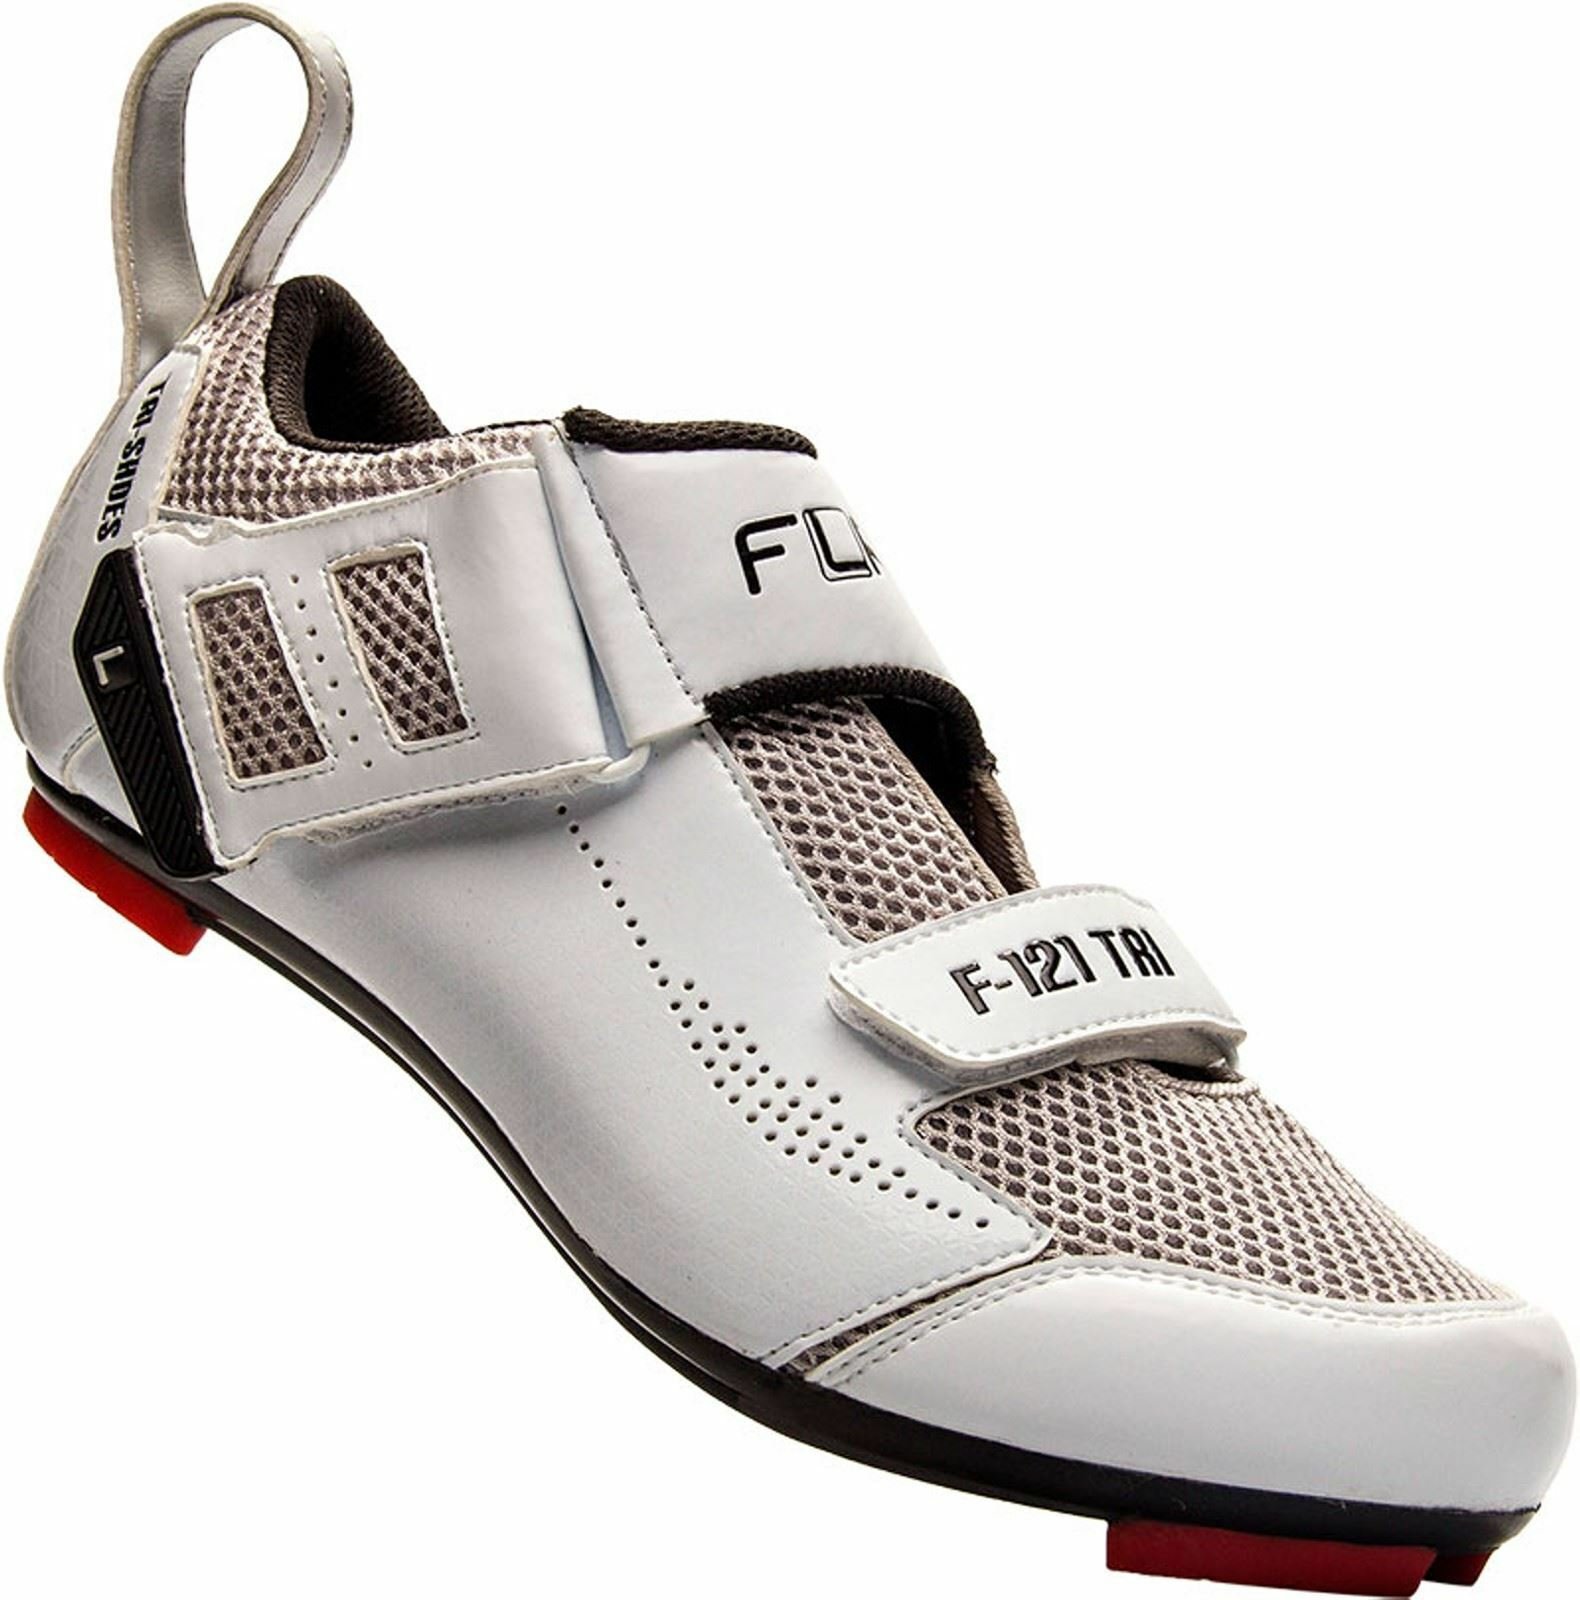 FLR F-121 Triathlon shoes in White - Size 38 Mountain and Road Bike Cycling